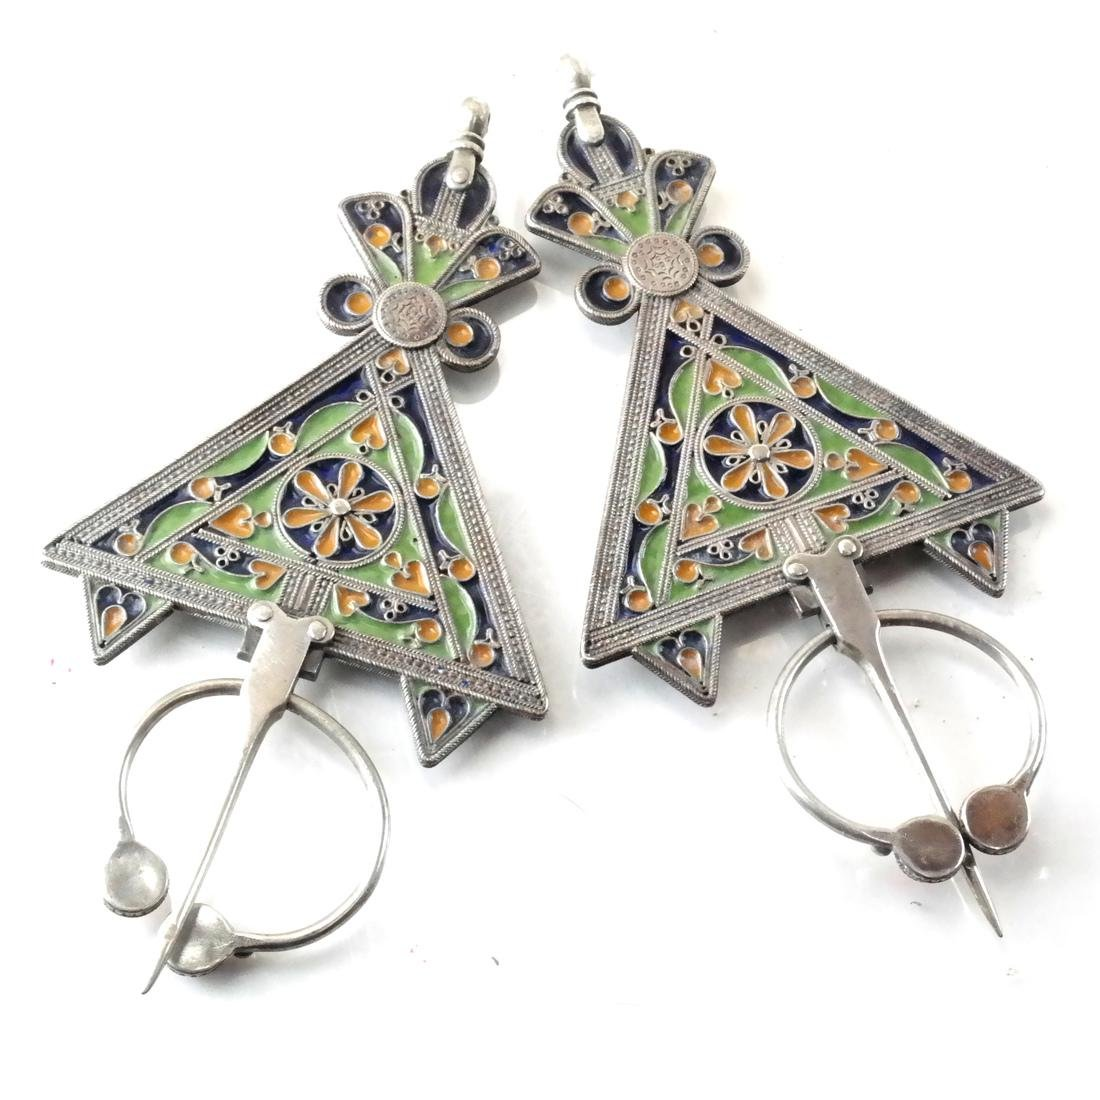 Antique Silver & Enamel Afghan/Central Asian Drops - 4